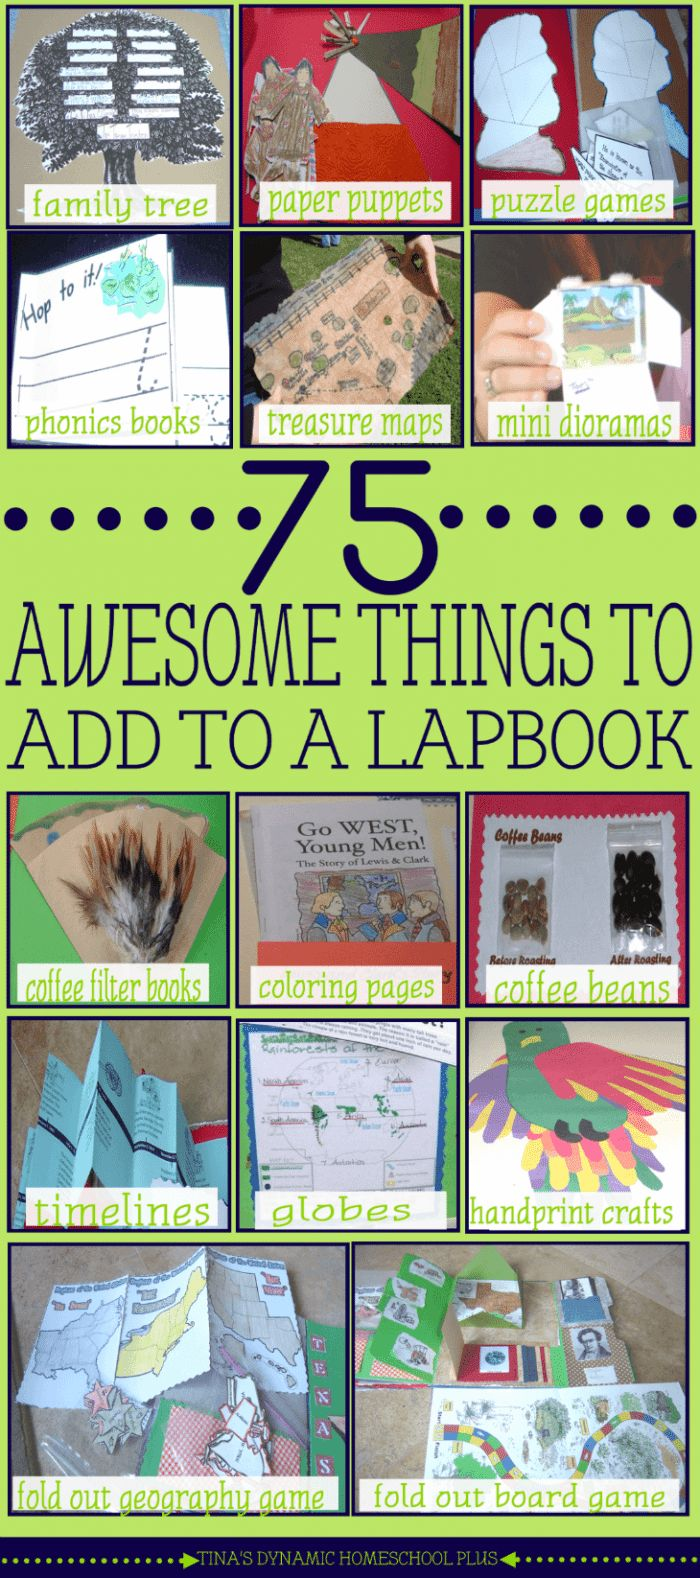 2123 best Bible Class ideas images on Pinterest   Day care, School ...